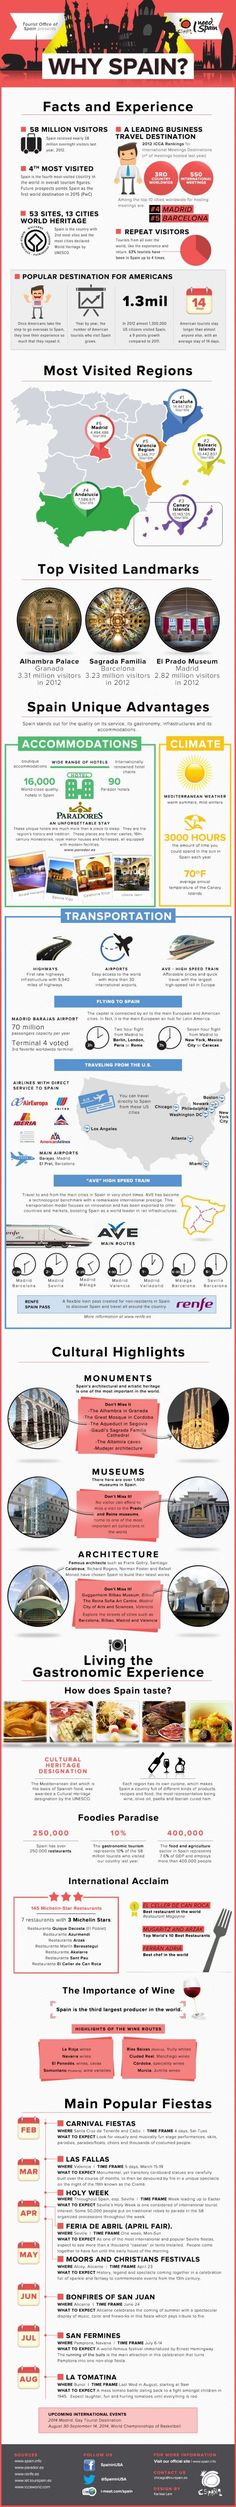 Why Spain? Infographic #Travel